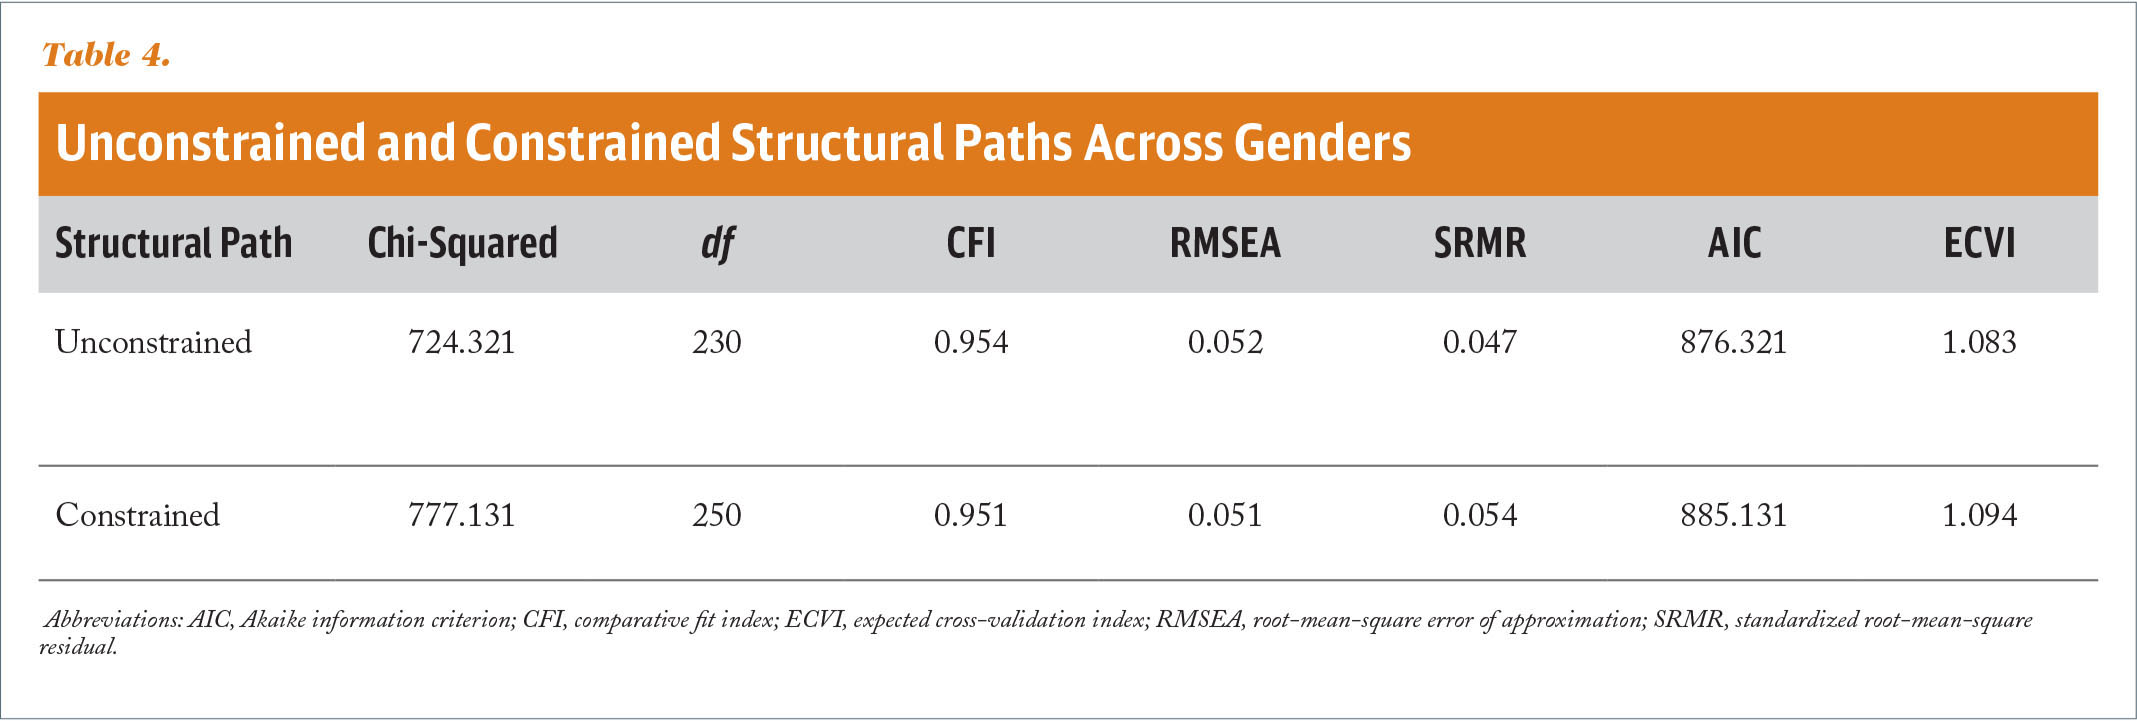 Unconstrained and Constrained Structural Paths Across Genders